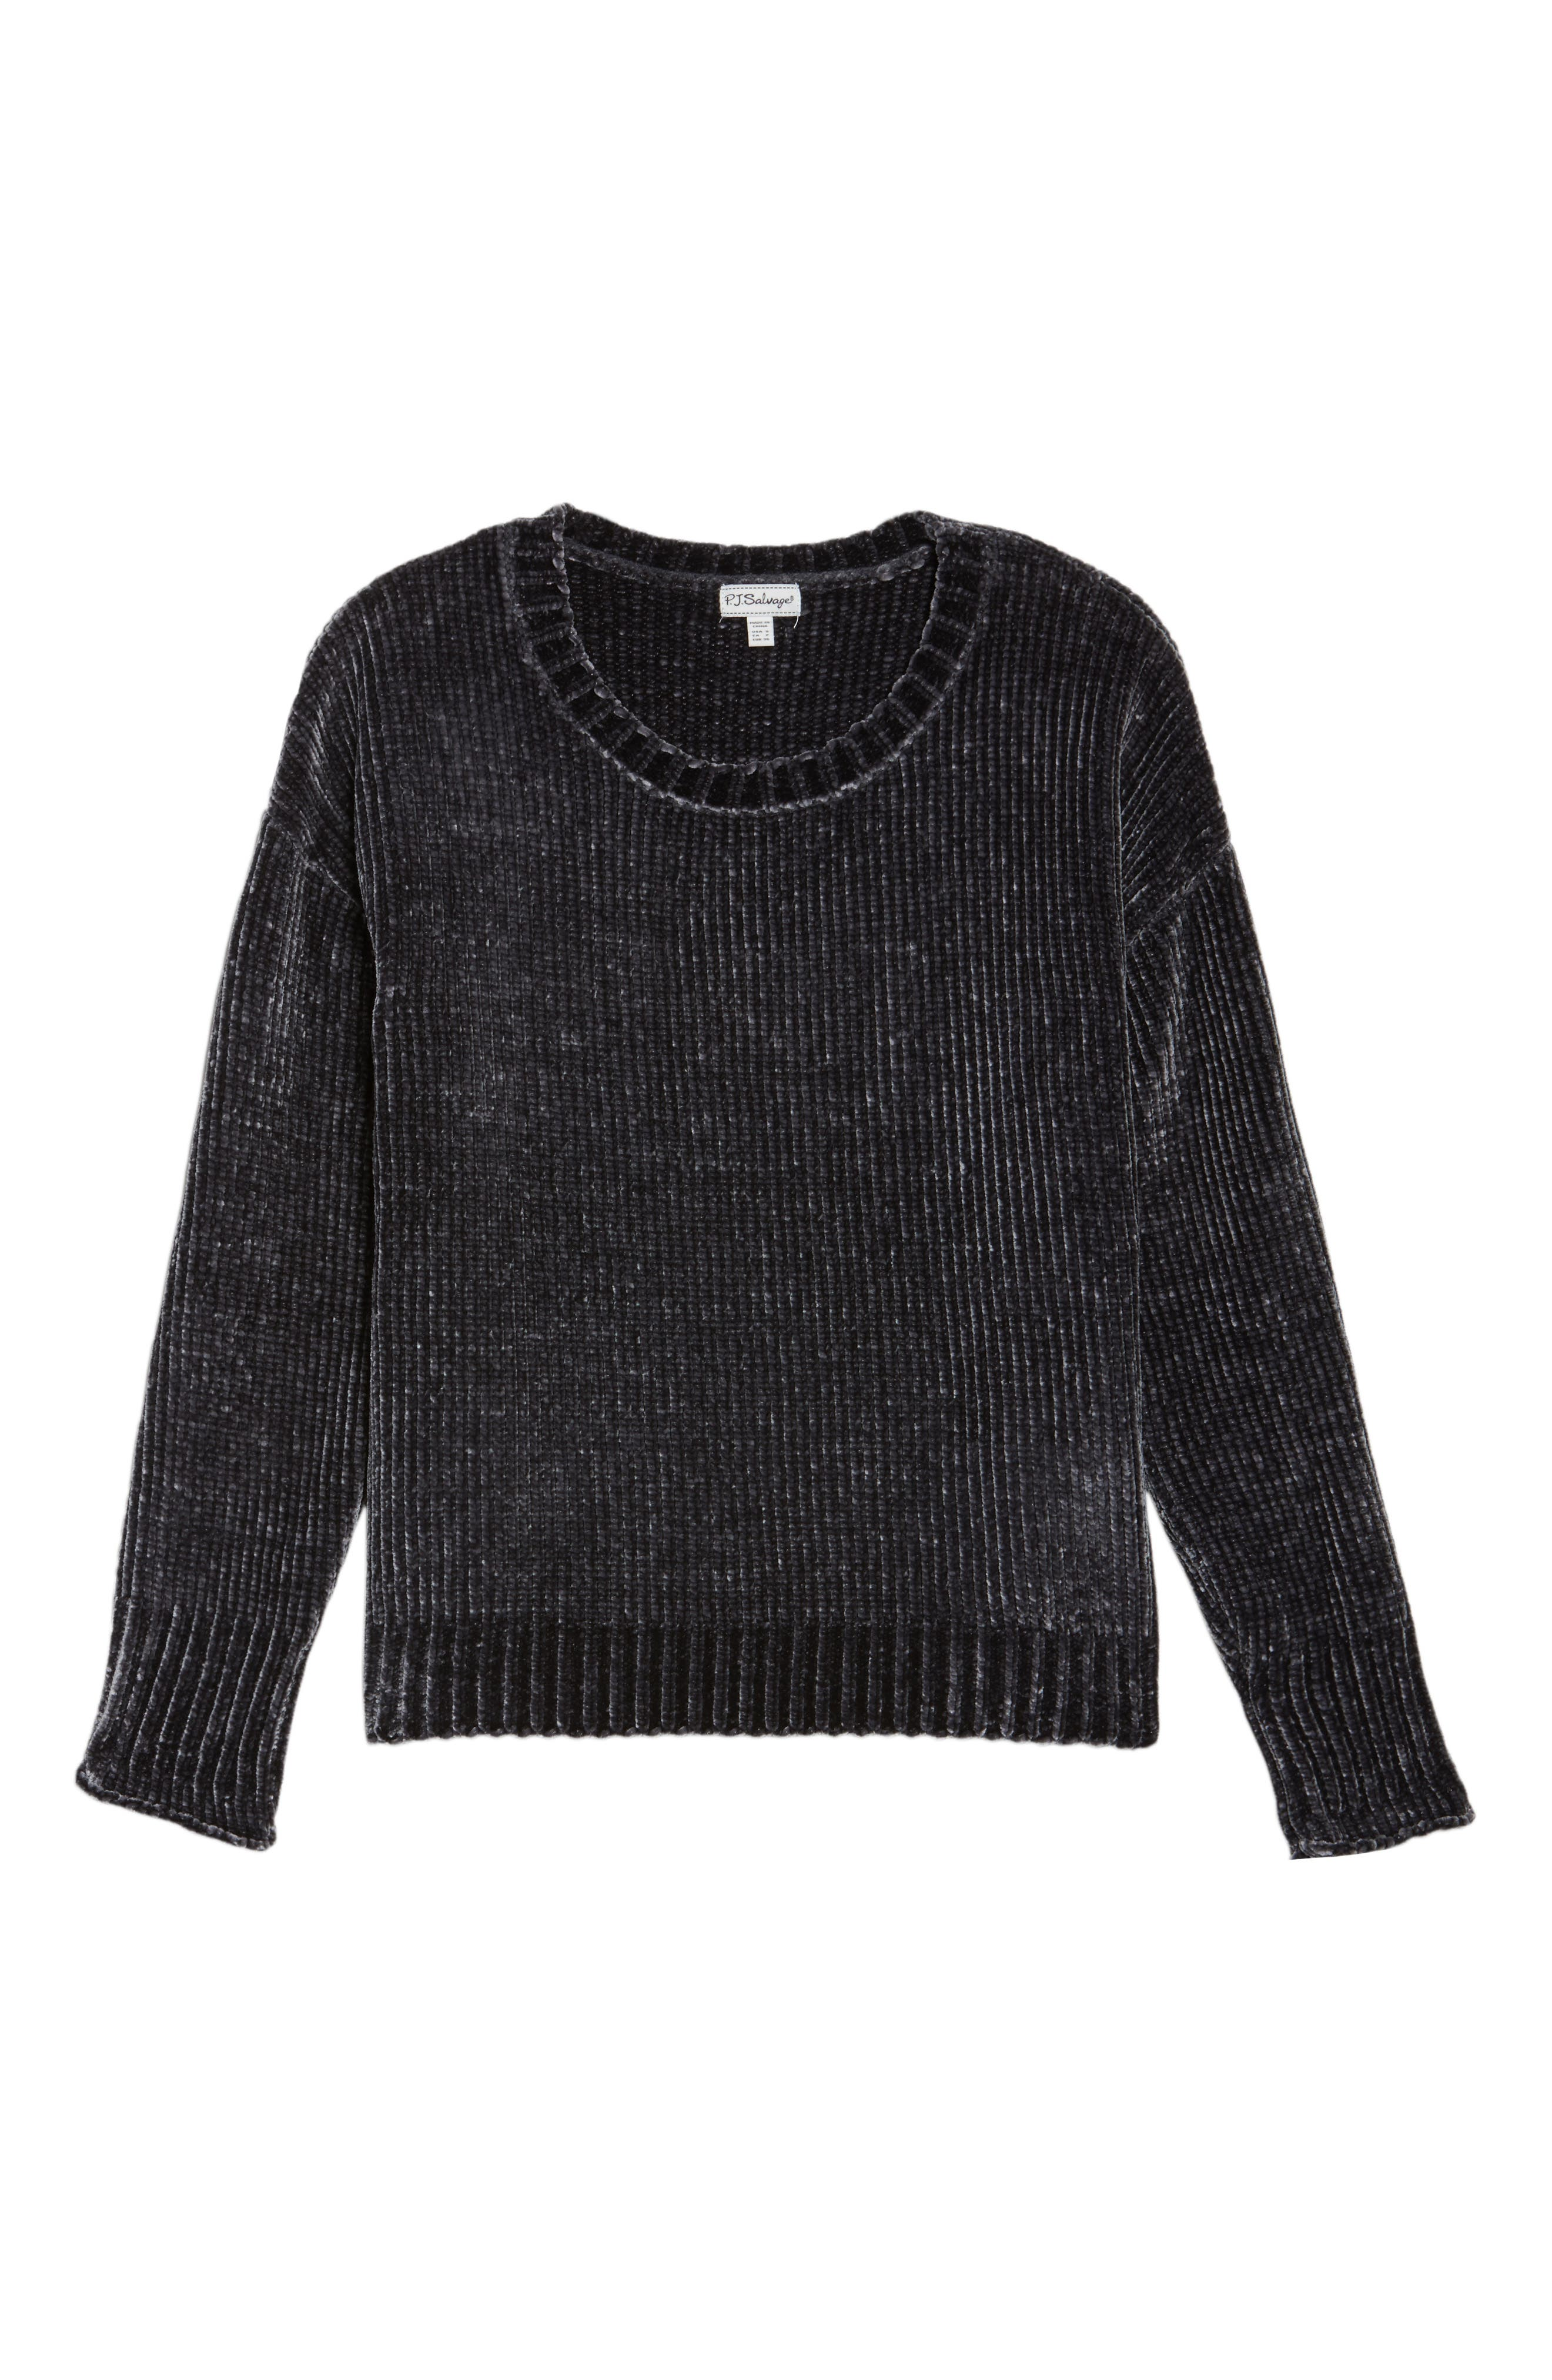 Chenille Sweater,                             Alternate thumbnail 6, color,                             030